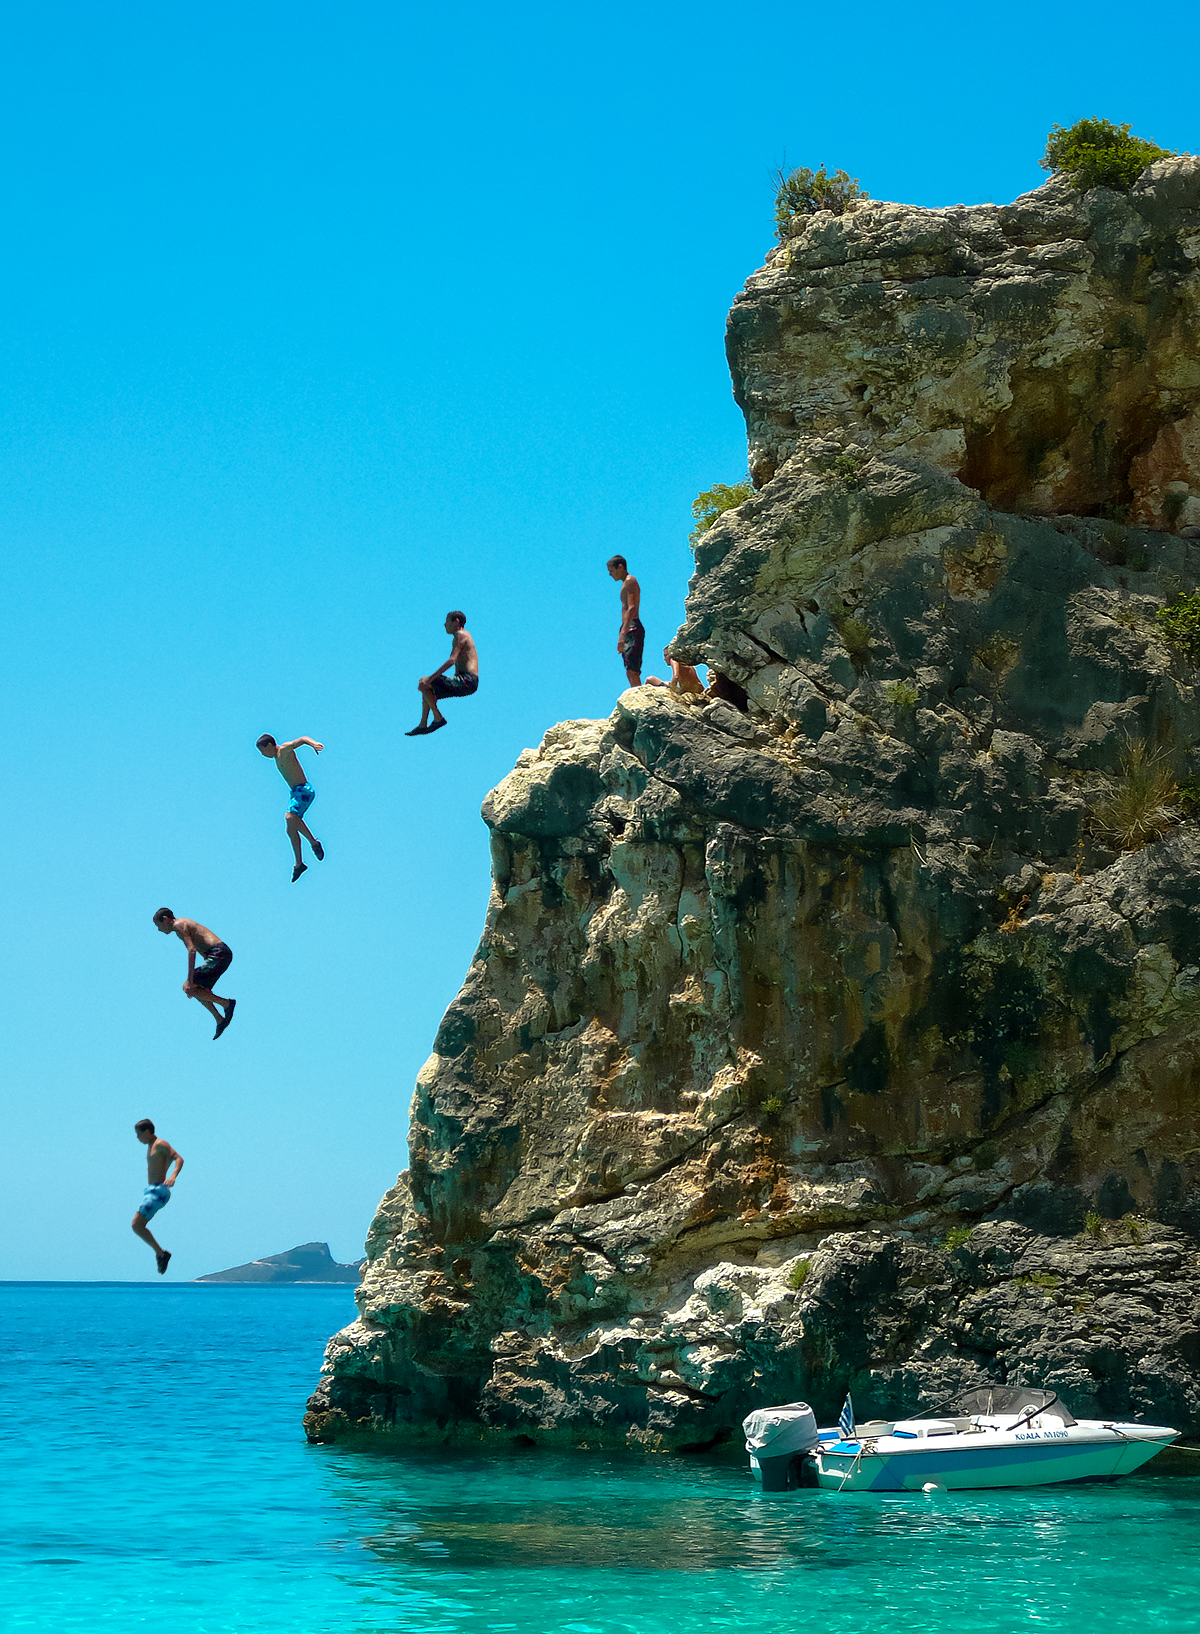 Guy Jumps Off 50ft Cliff Without Looking, Massively Backfires Cliff Jumping 3